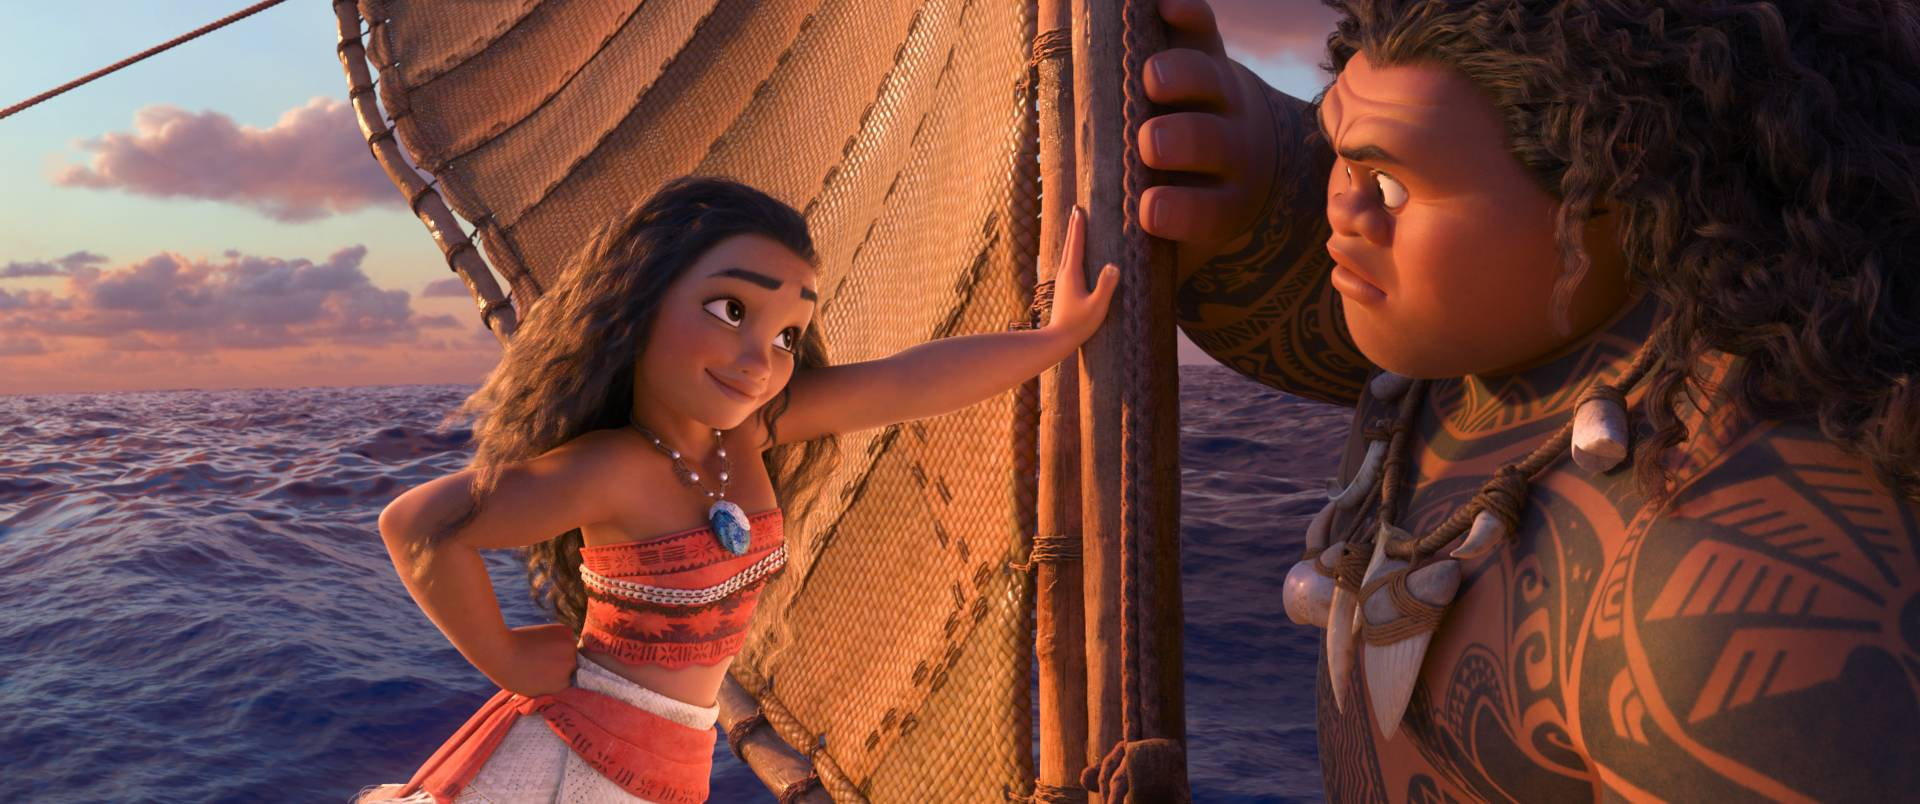 """Moana"" will be screened at the Oak Brook Park District's Dive In Movie event at the Family Aquatic Center on Friday, Feb. 16."